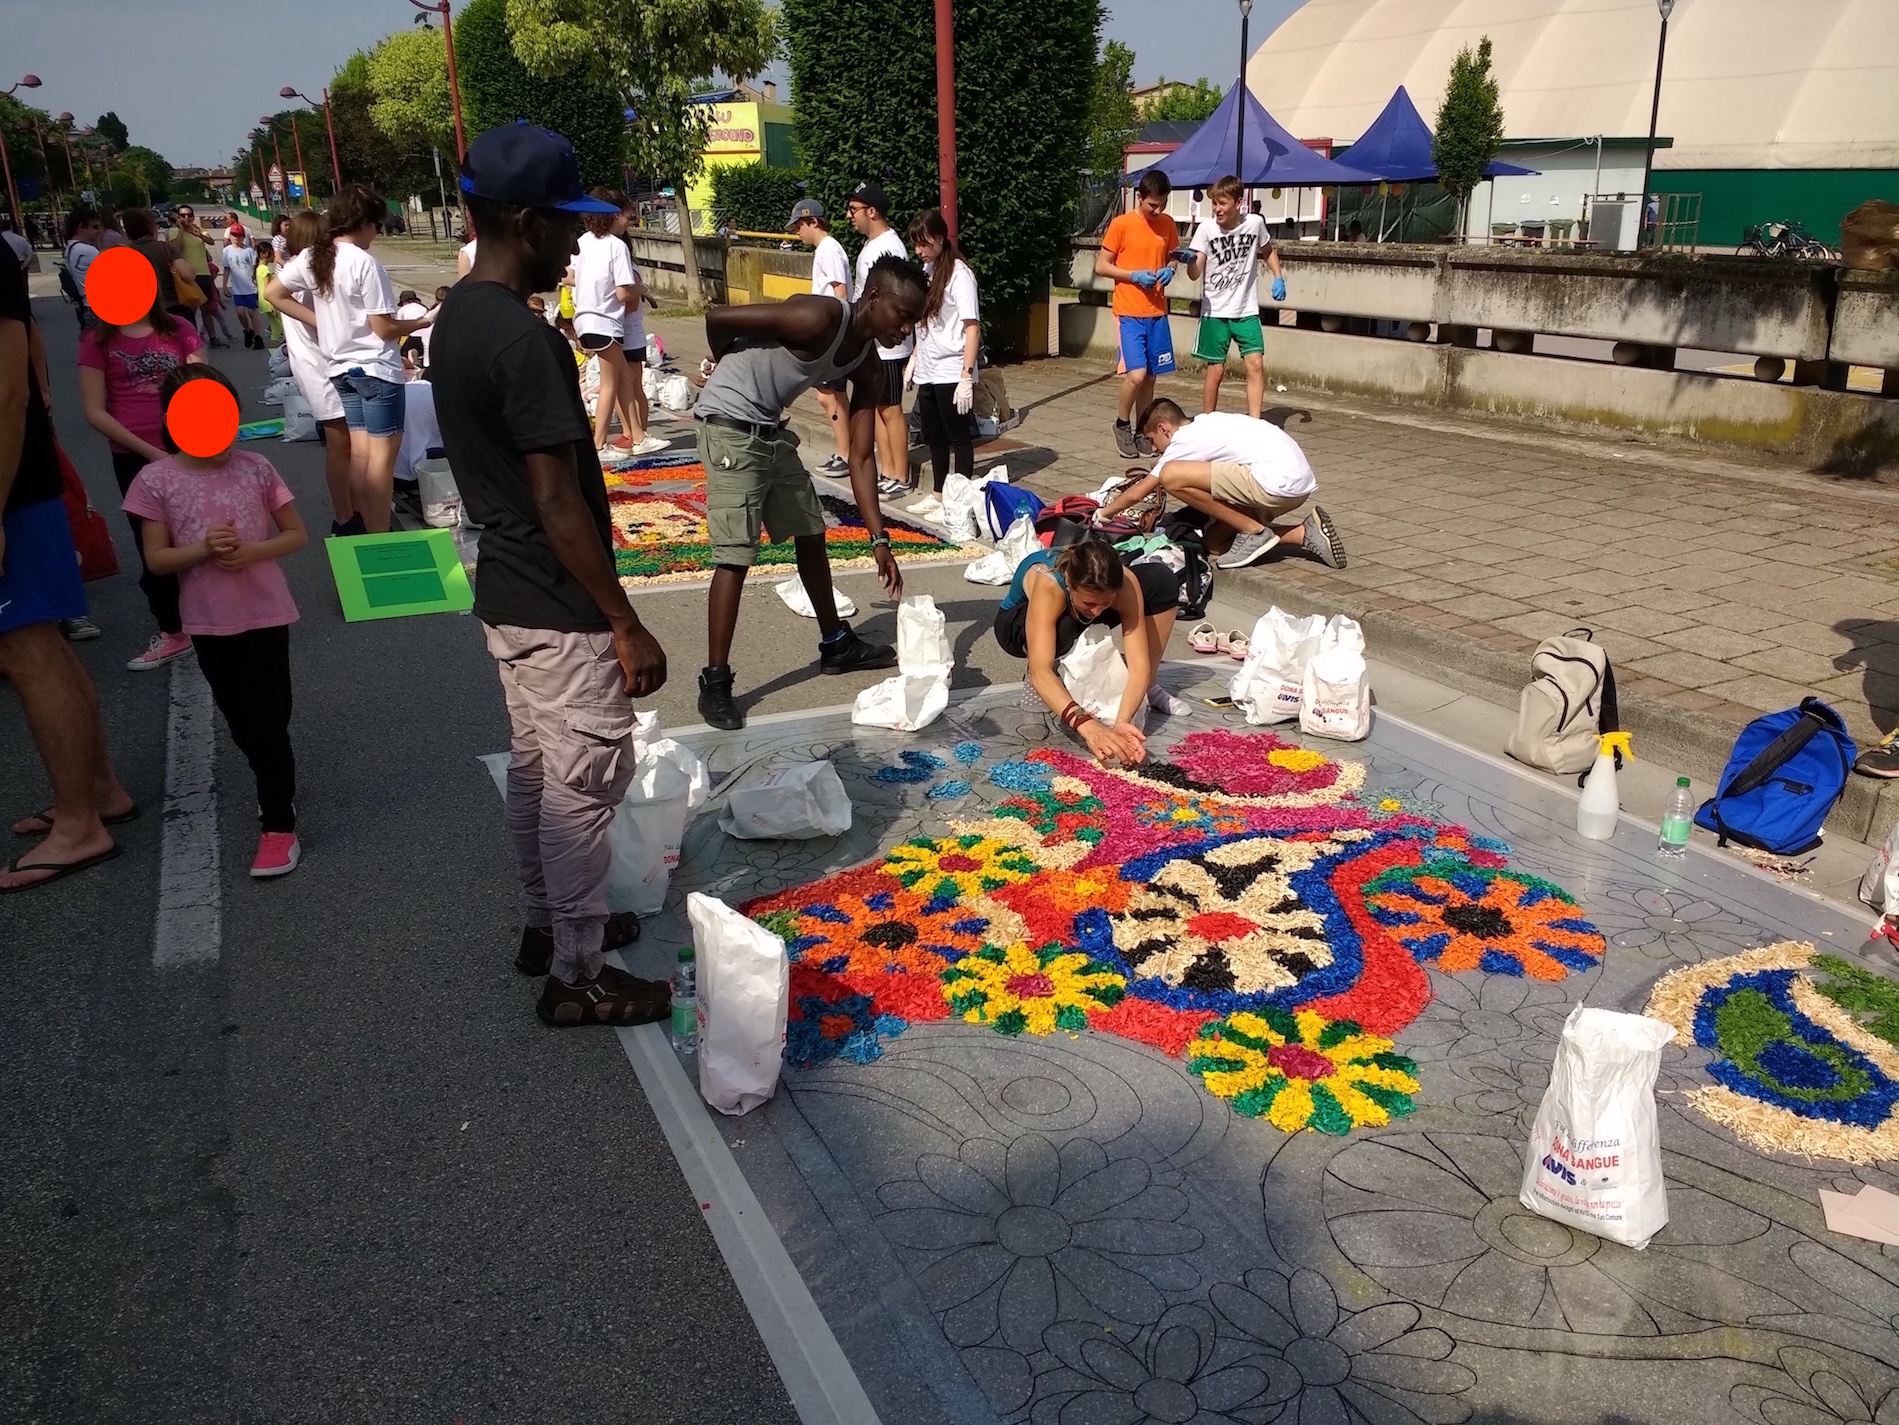 "The guests of the Sprar participate in the event ""A Color Road"". This initiative was organized by the Municipality of Rubano. The event aimed to color some streets of the city with drawings made from colored petals. The various designs were made by groups of citizens of Rubano."